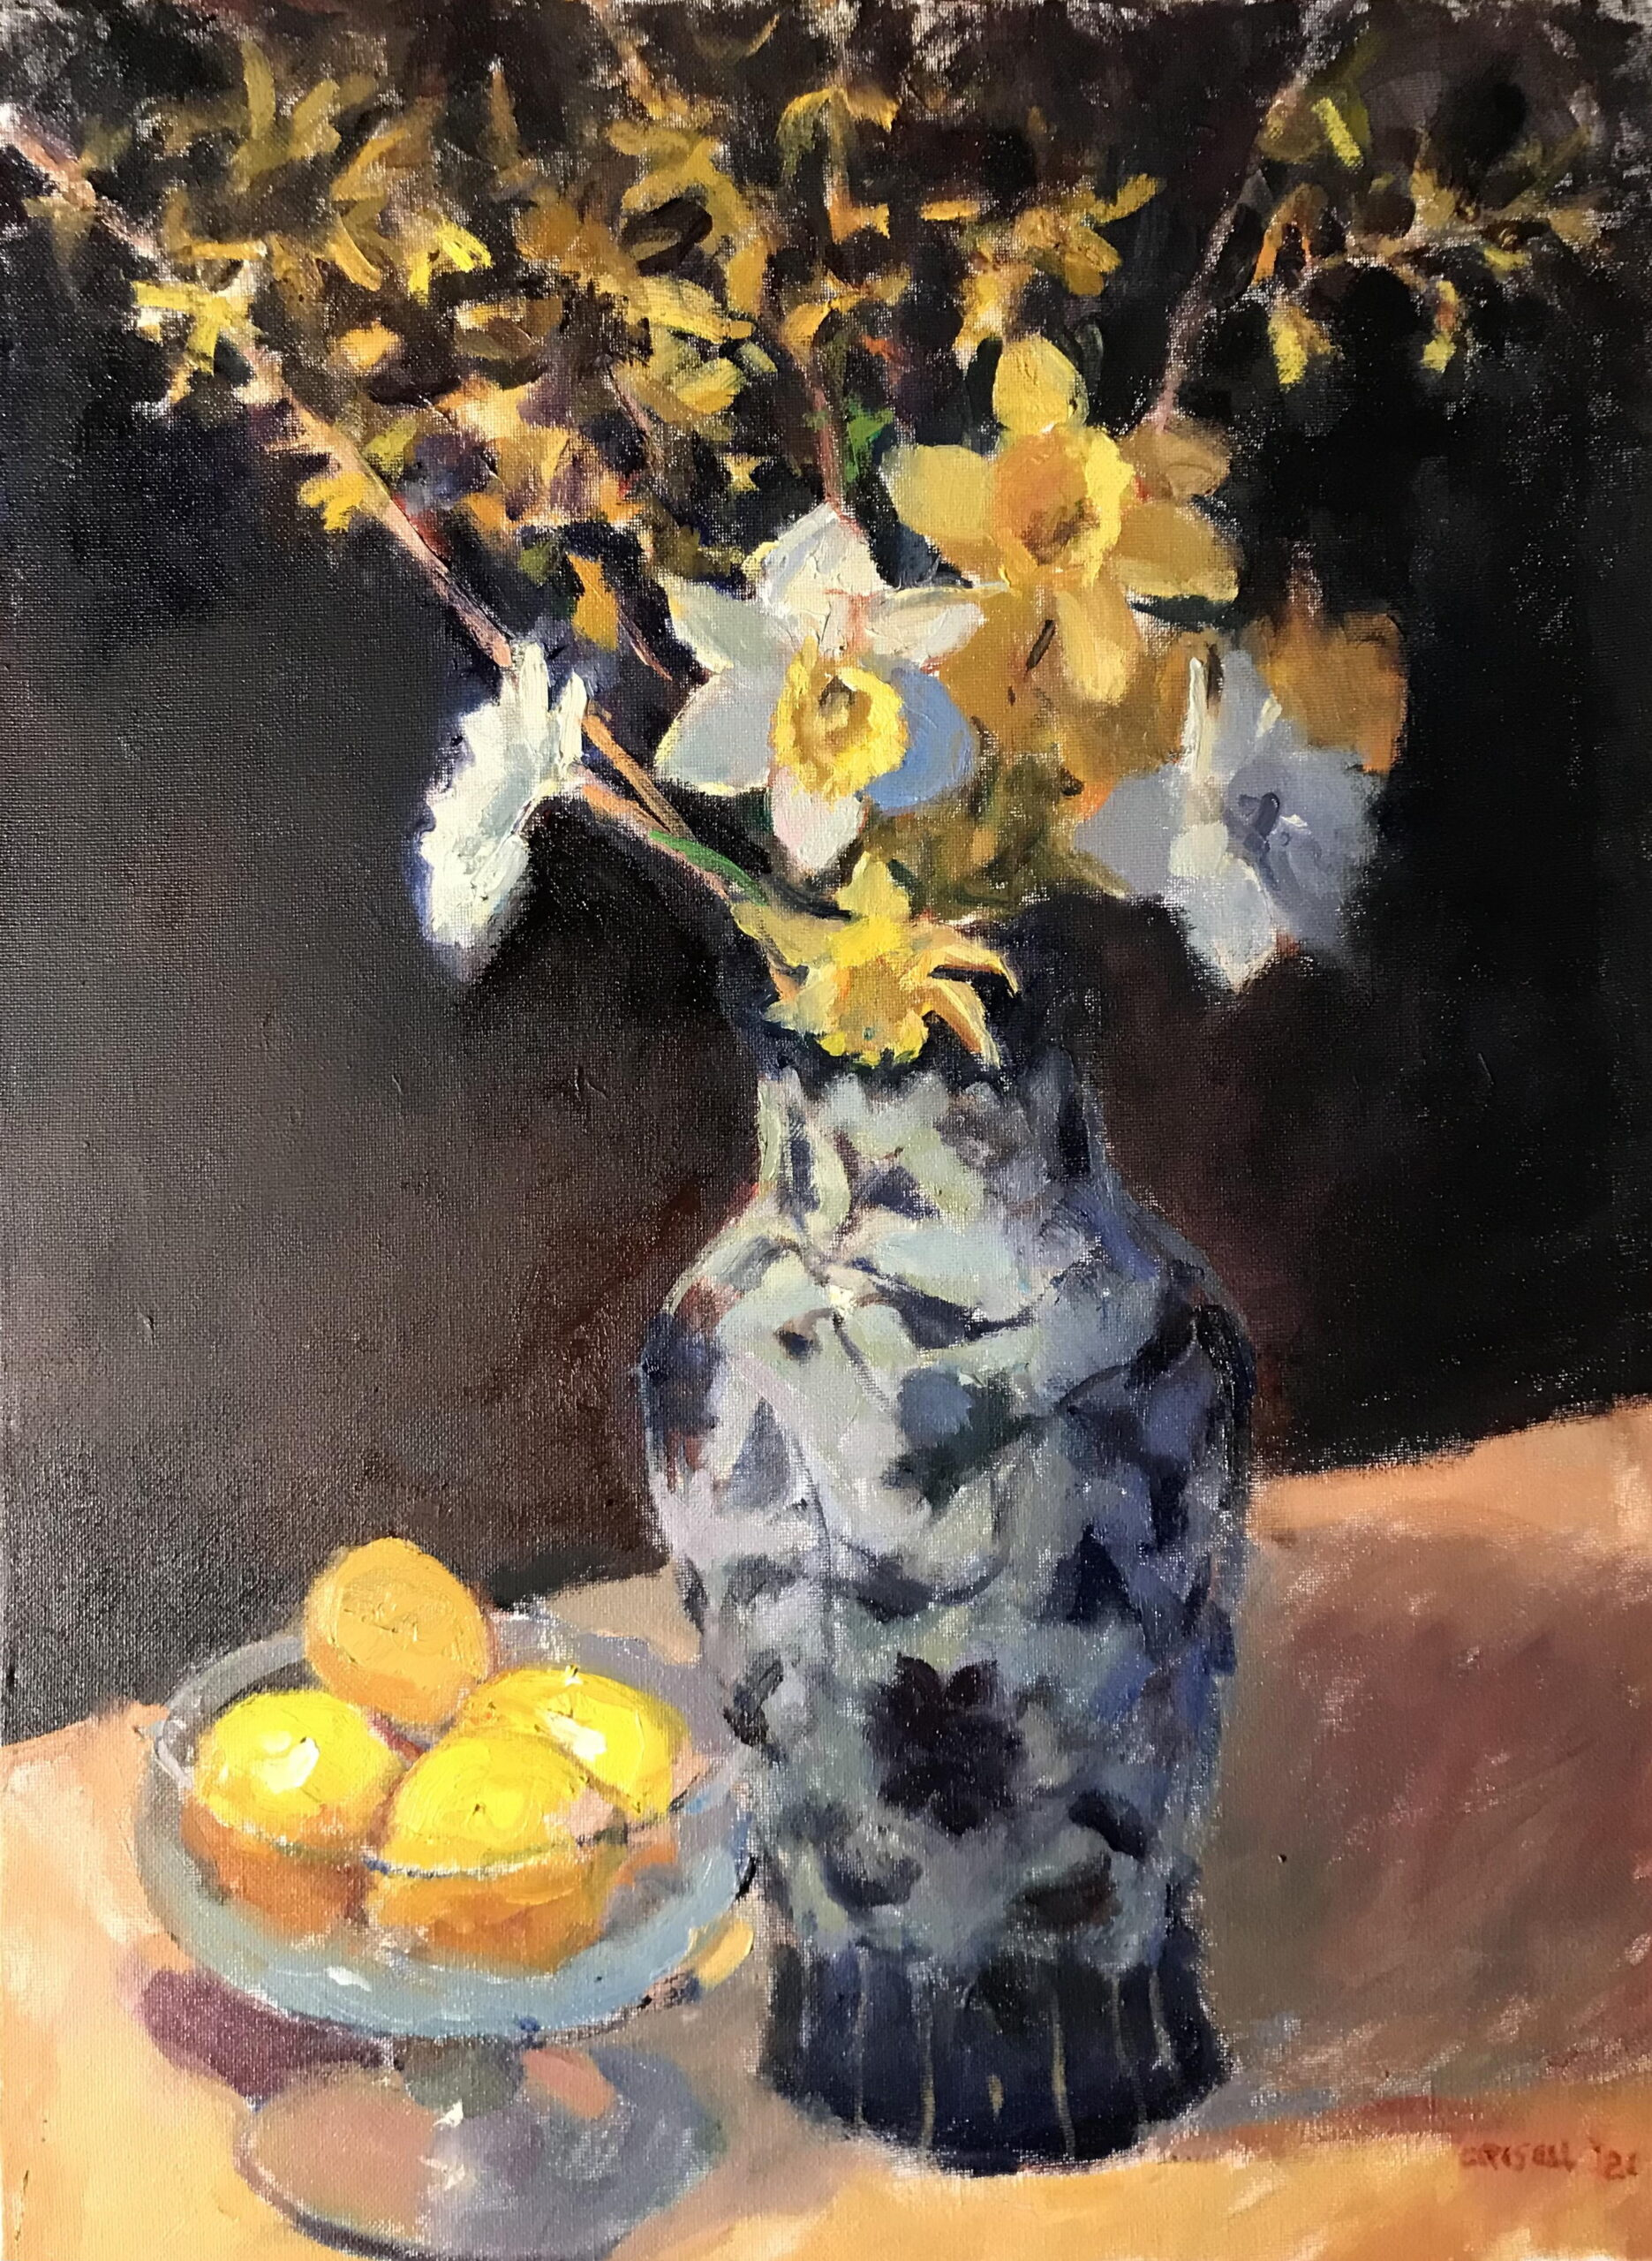 April Flowers, Oil on Canvas, 24 x 18 Inches, by Susan Grisell, $750